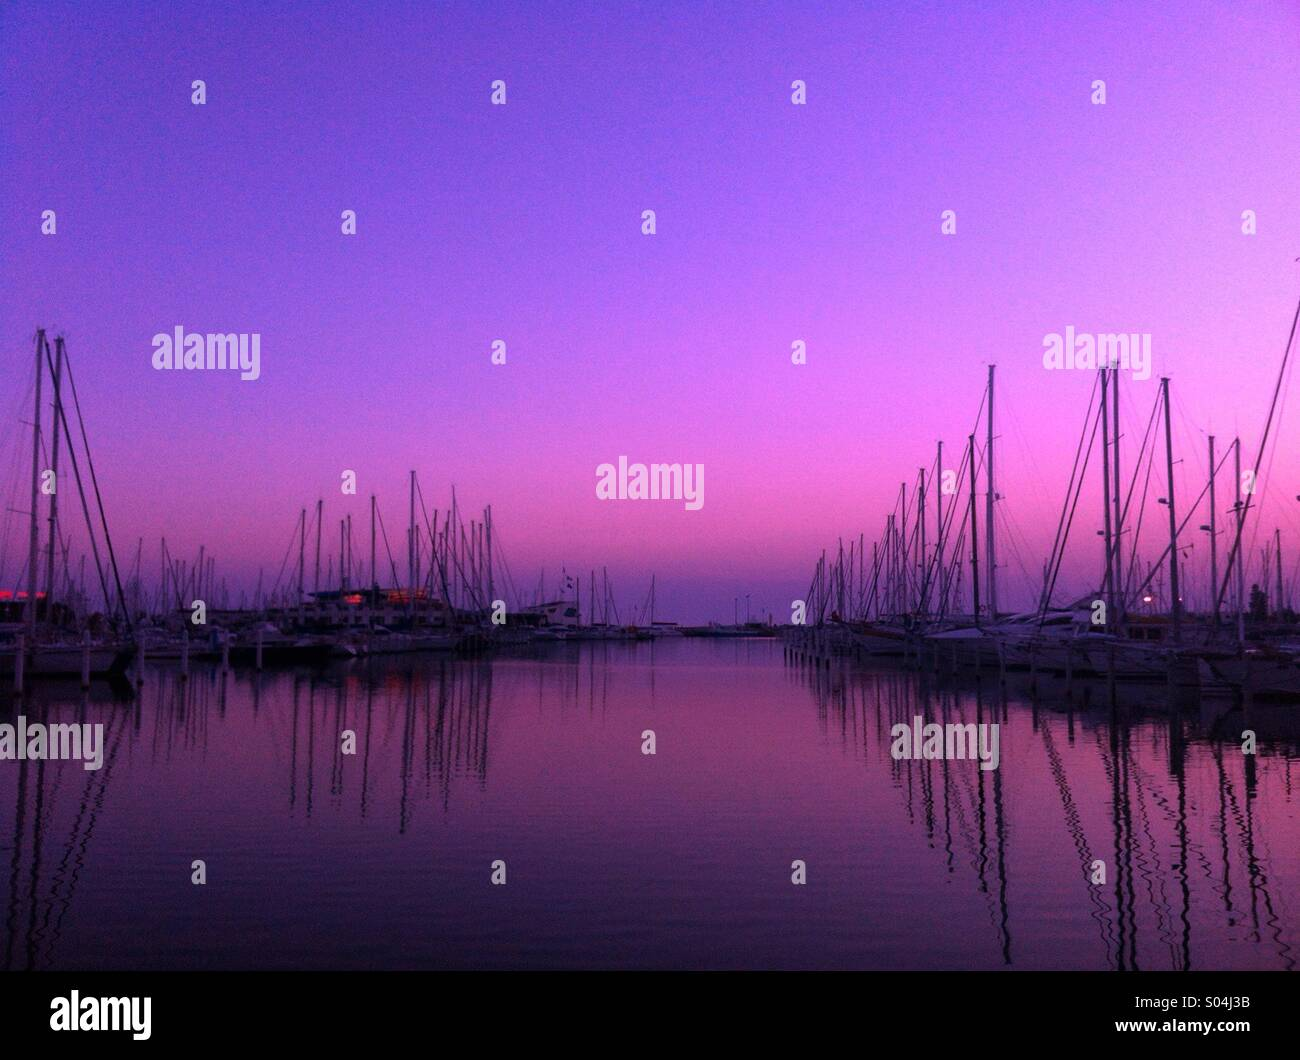 Violet spectaculaire lever du soleil, La Grande Motte, France Photo Stock